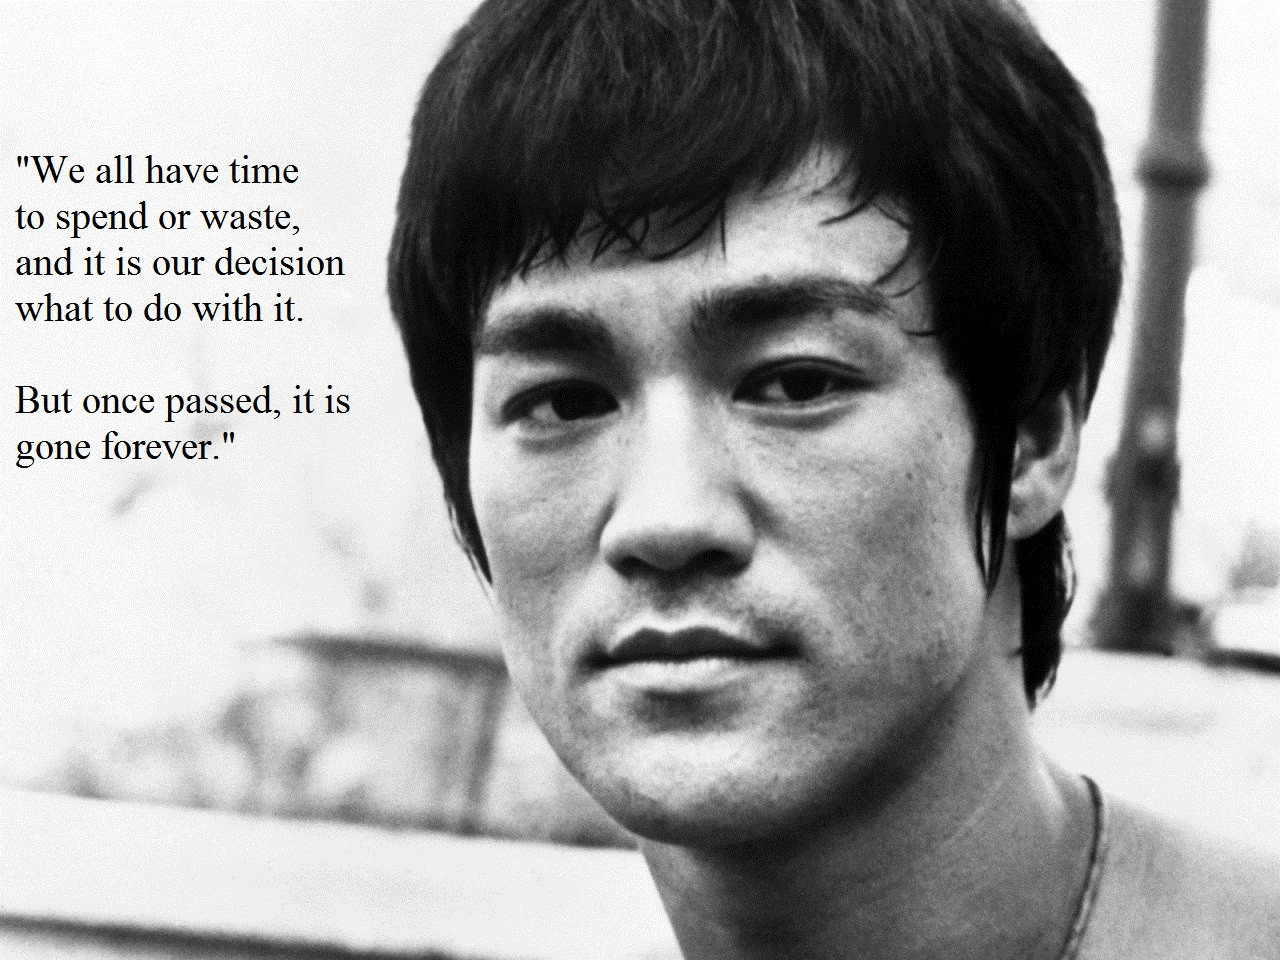 [Image] Motivational Bruce Lee quote